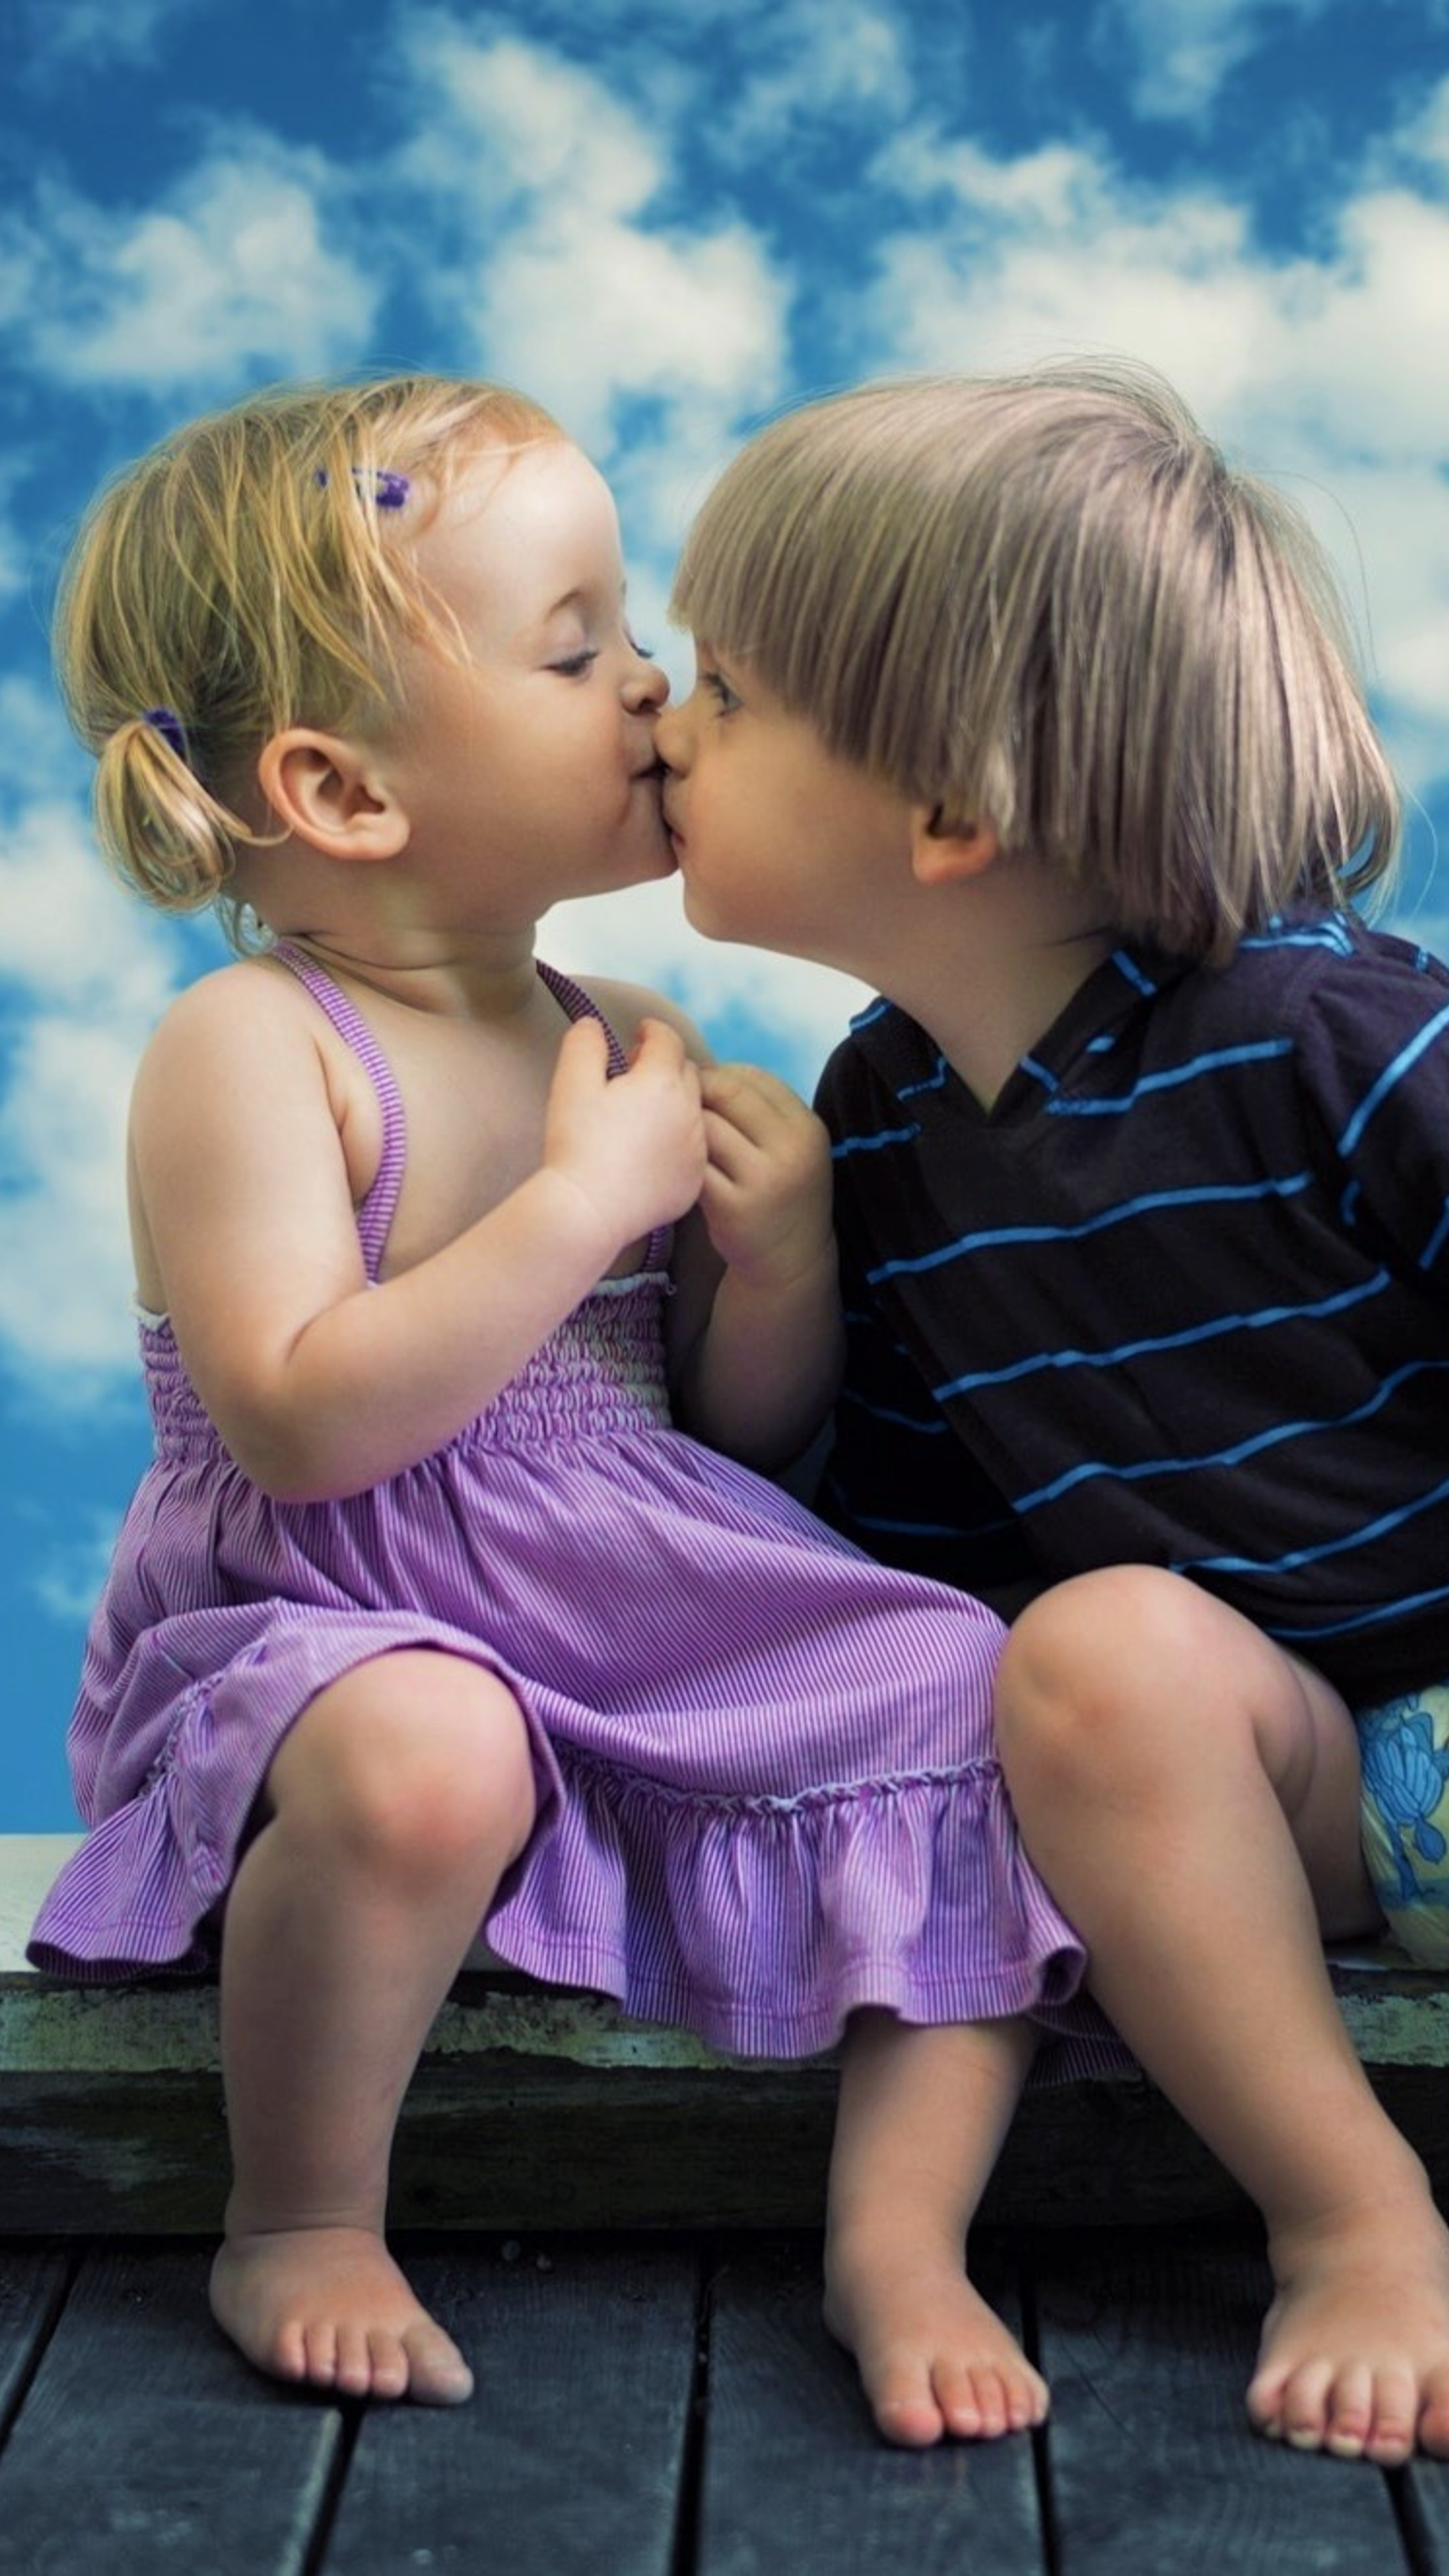 Little Boy Kissing Pictures Free Download-4048